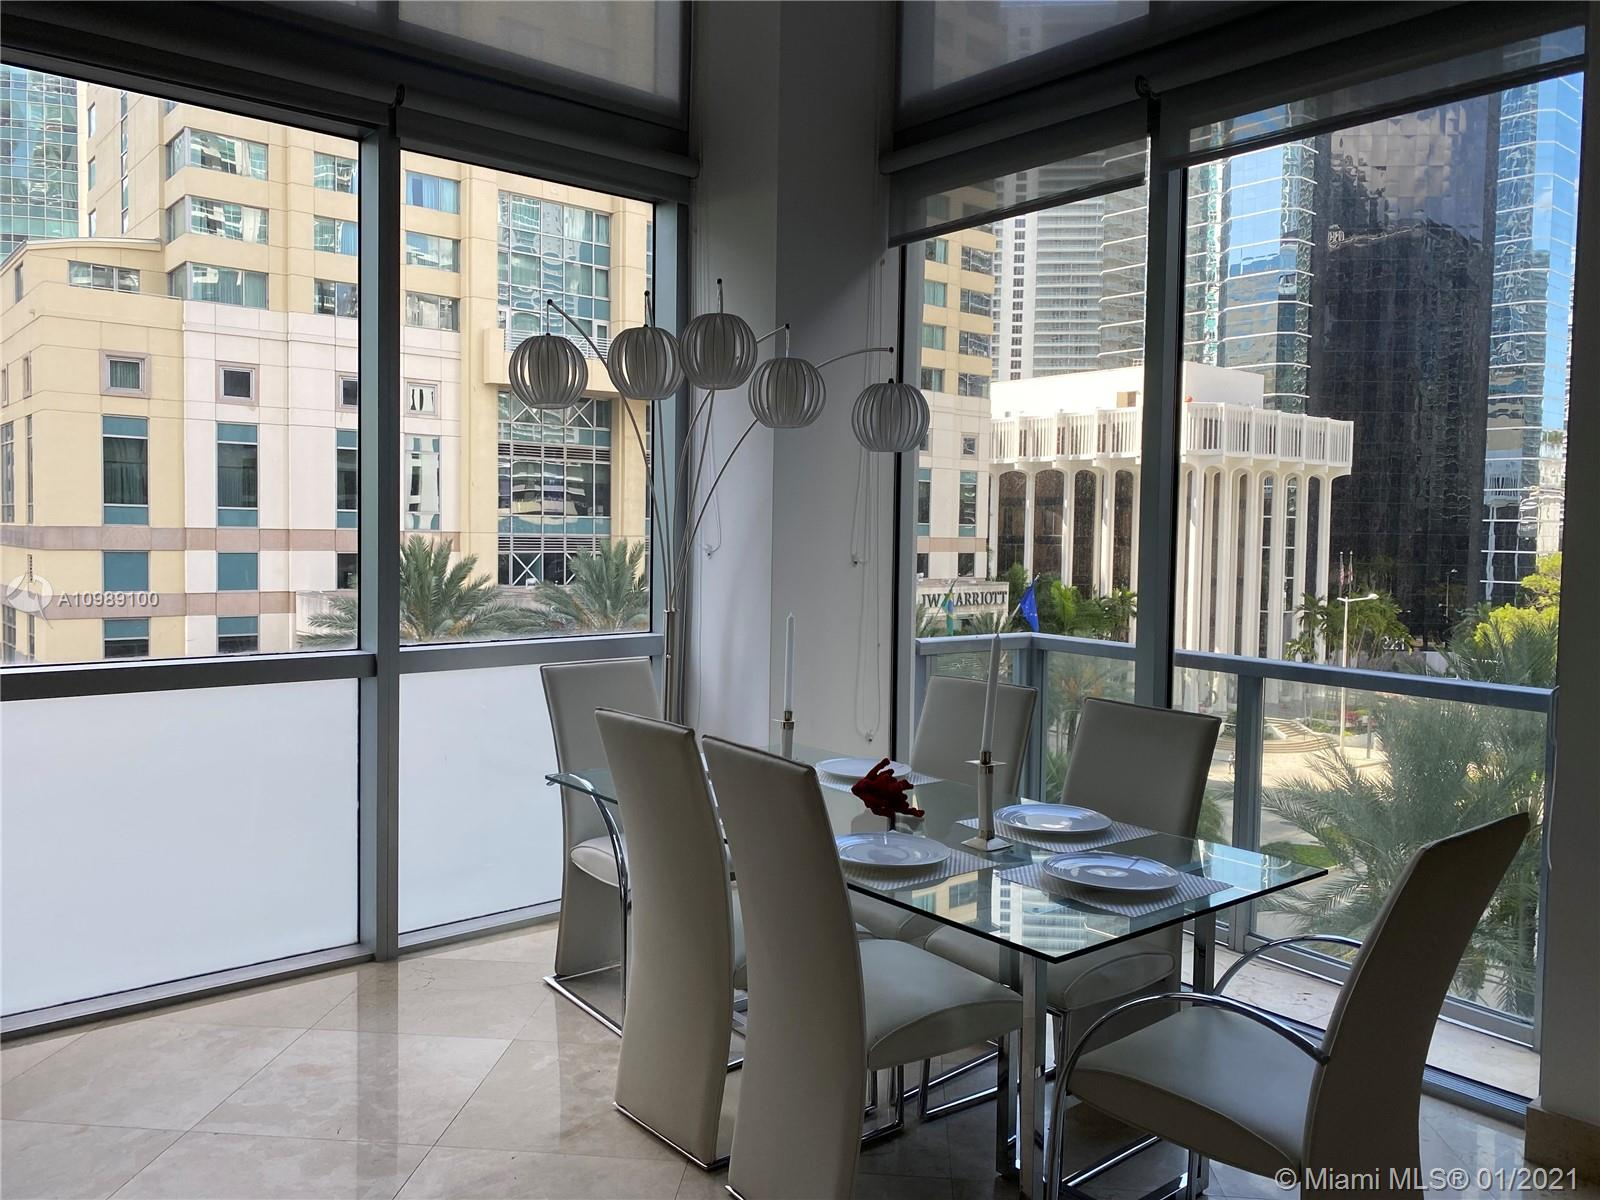 Beautiful two story loft, 18' Foot ceiling, marble throughout the apartment, city views, in the heart of Brickell. Amenities to enjoy include: pool with sundeck, state of the art fitness center, virtual golf room, wine & cigar lounge, family room, spa treatment rooms, yoga/aerobic room, game room with billiard table, lounge and party room with catering kitchen. THIS UNIT COMES WITH TWO ASSIGNED PARKING SPACES ON THE 4th FLOOR, YOU CAN WALK TO YOUR UNIT FROM YOUR PARKING SPACES!